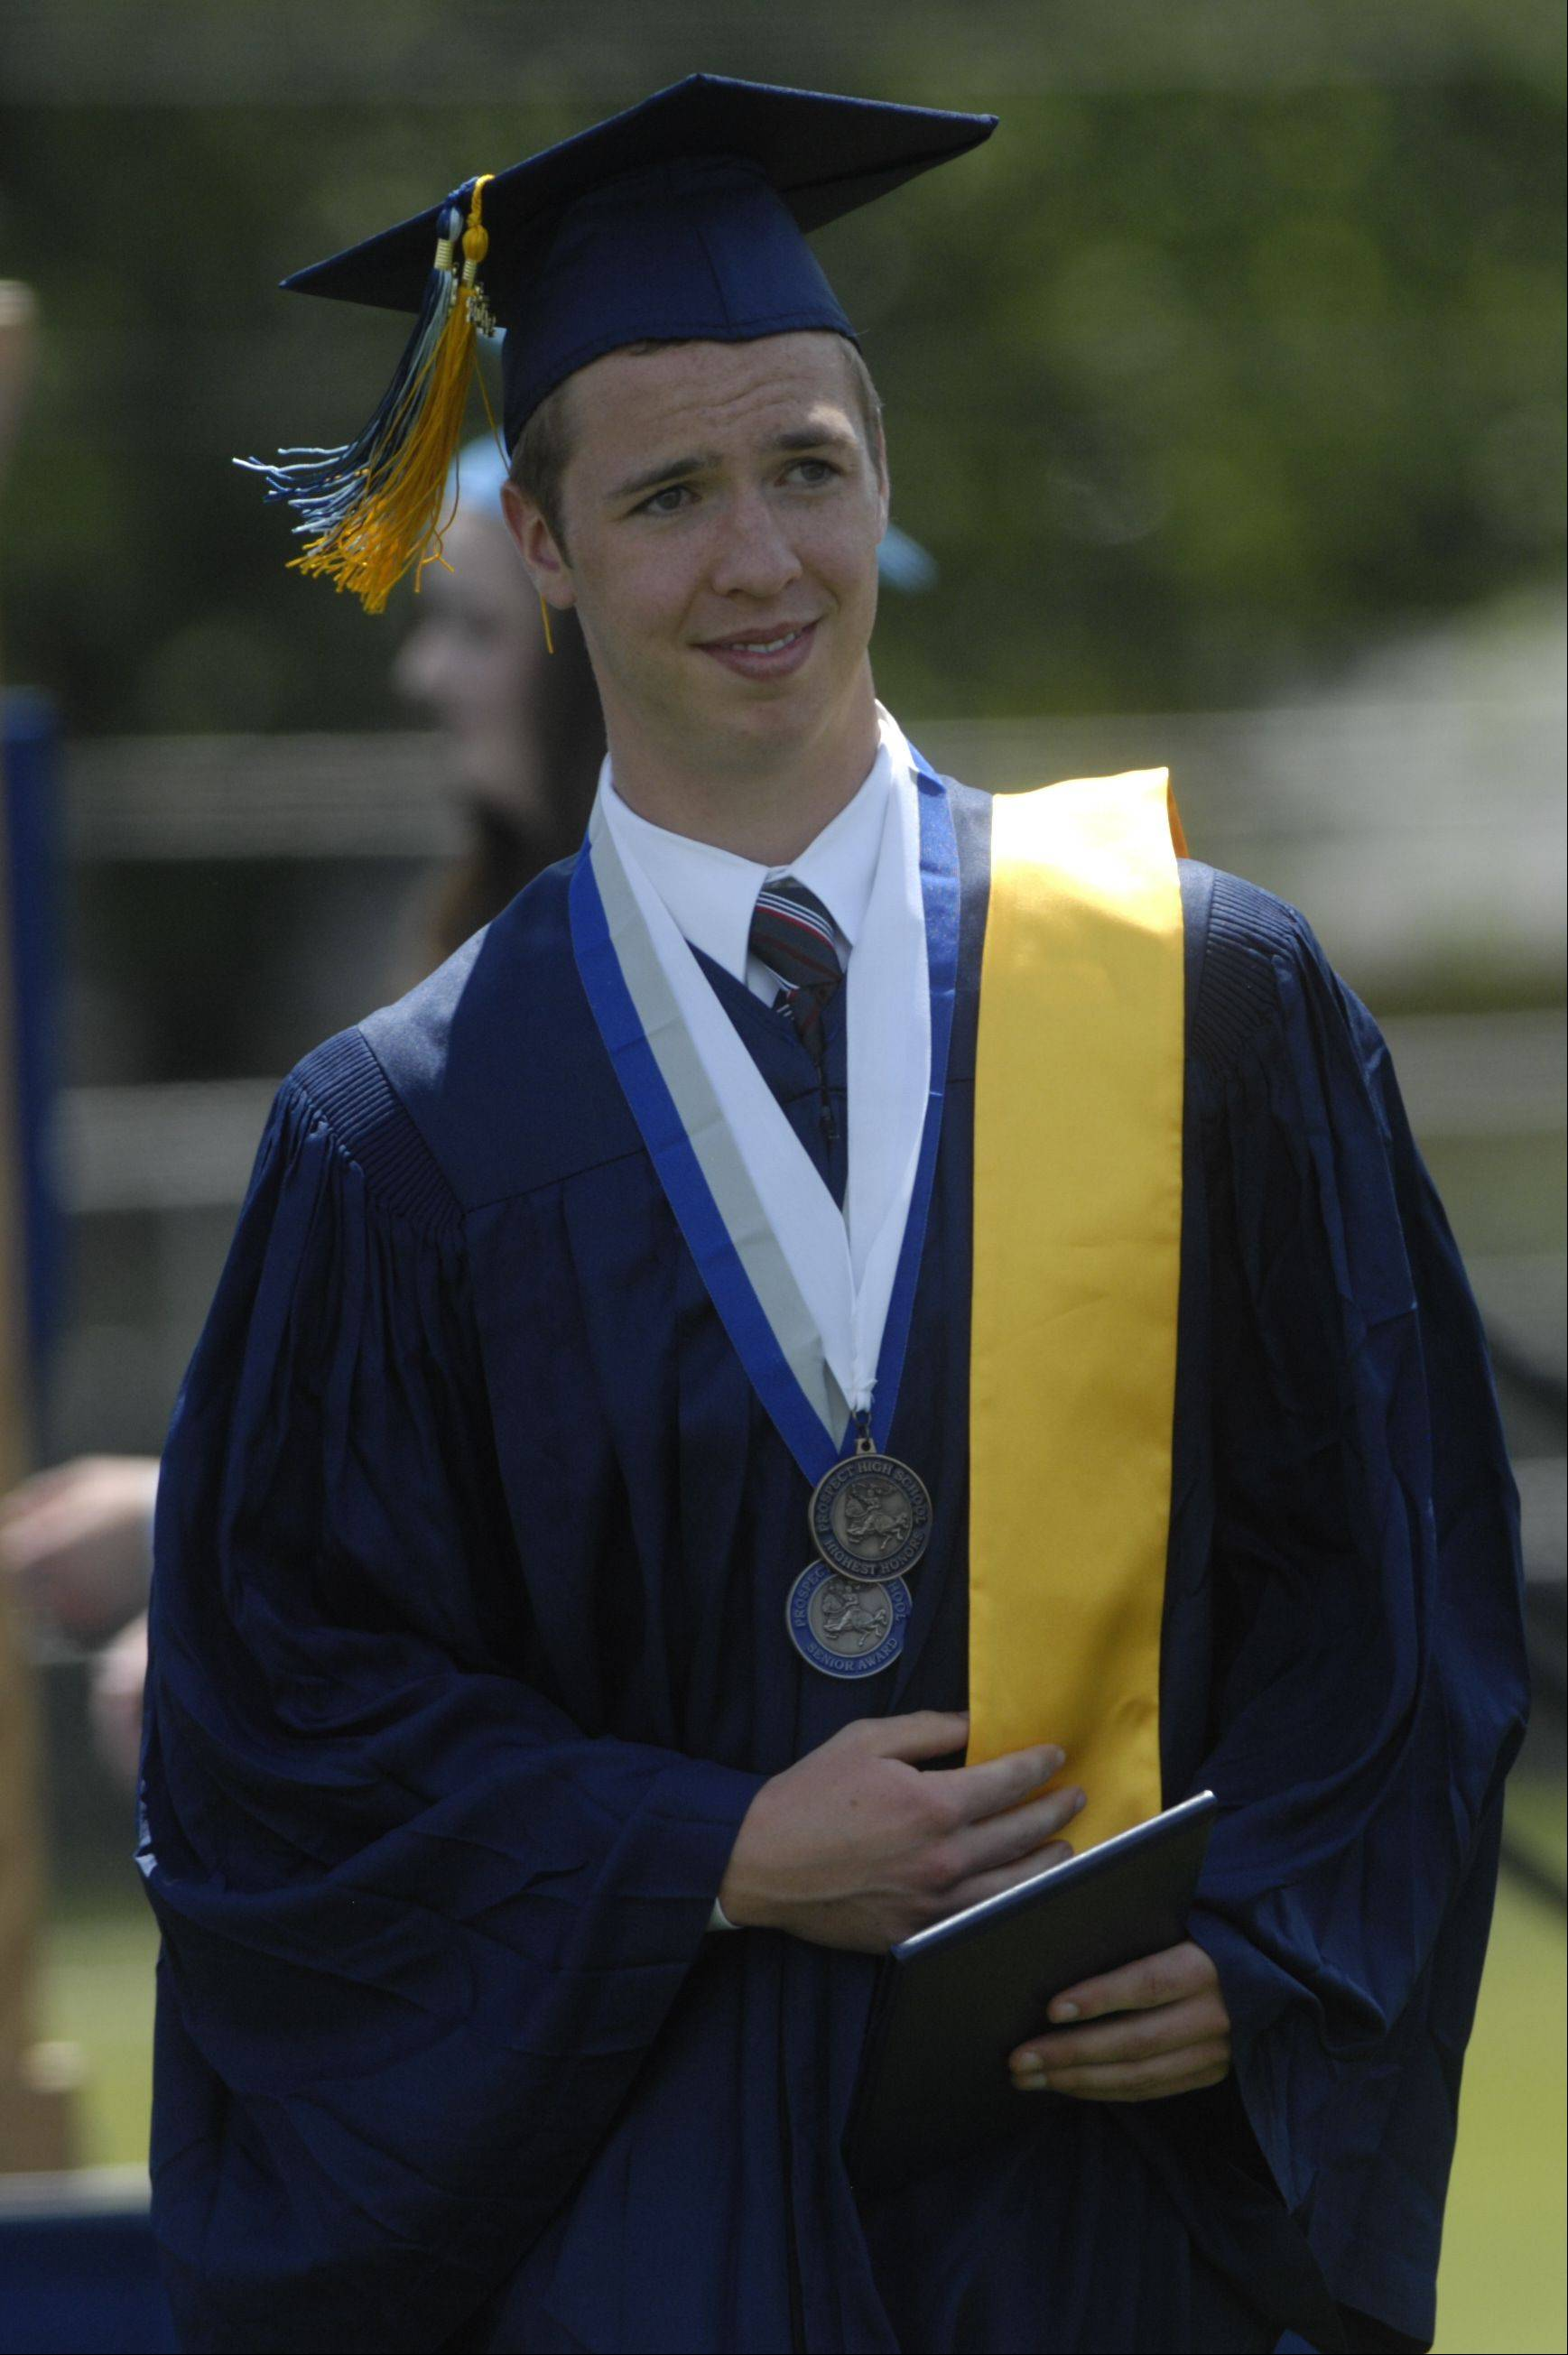 Images from the Prospect High School graduation on Sunday, June 3rd in Mount Prospect.